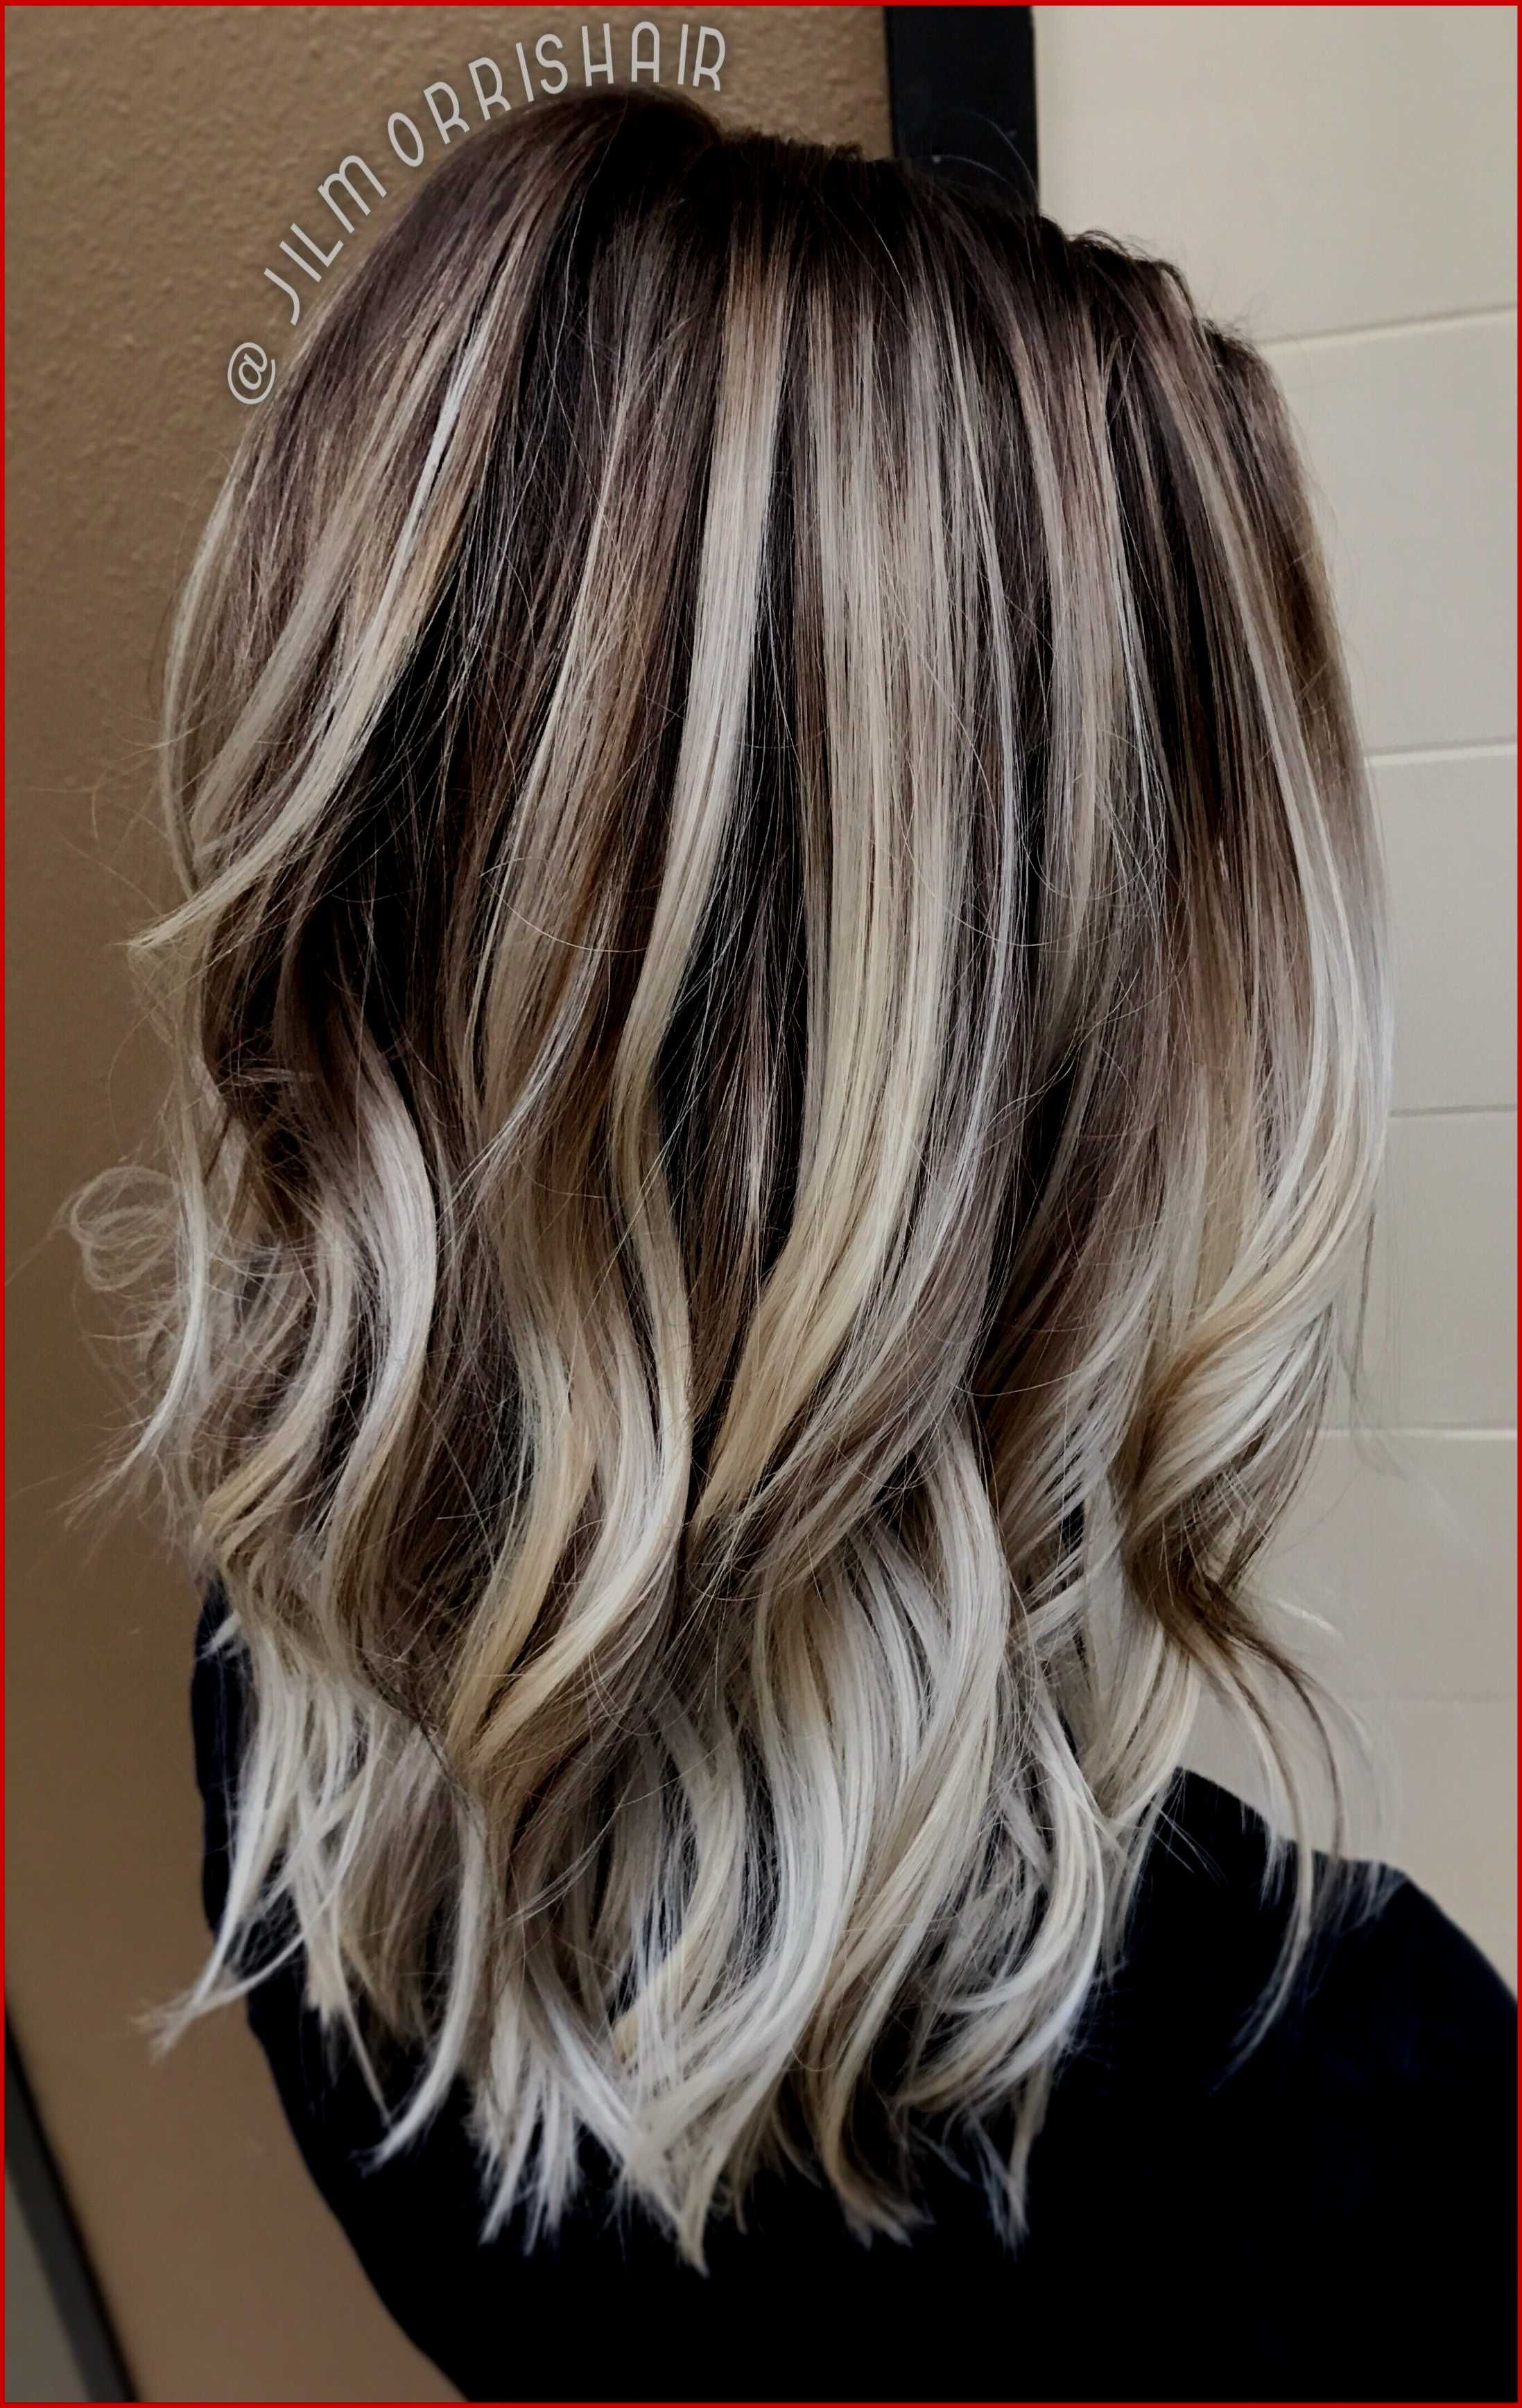 Blonde Highlight On Dark Brown Hair Blonde Hairstyles For Work In 2020 Brown Blonde Hair Blonde Hair With Highlights Brown Hair With Blonde Highlights